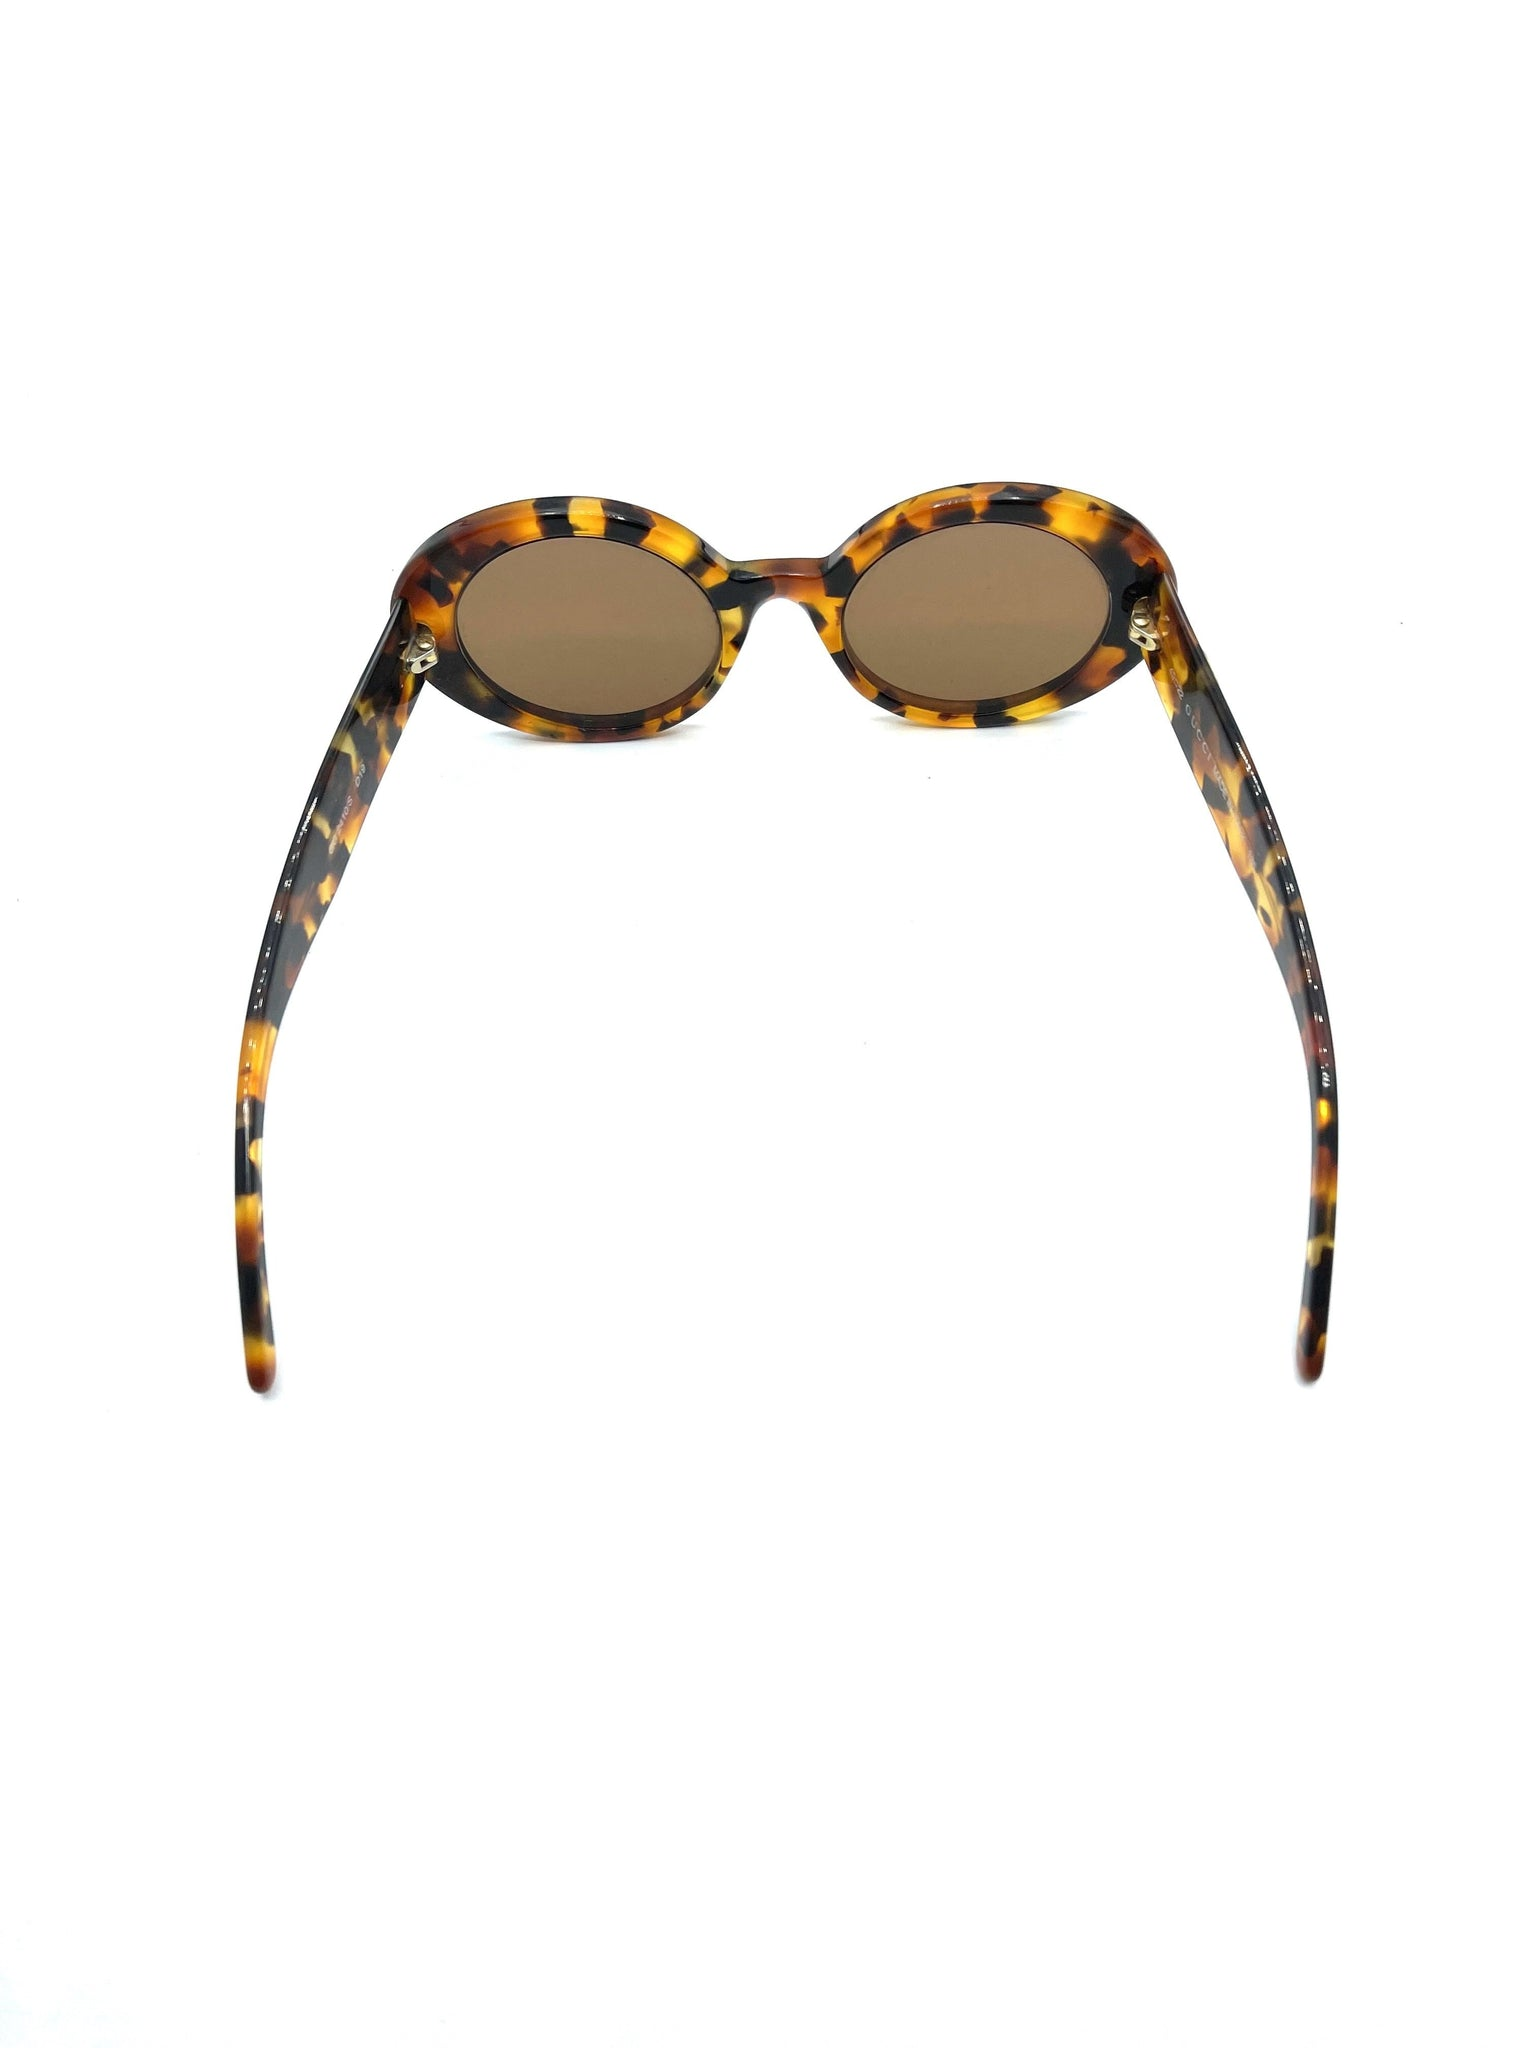 Gucci 90s Tortoiseshell Sunglasses REAR 4 of 6